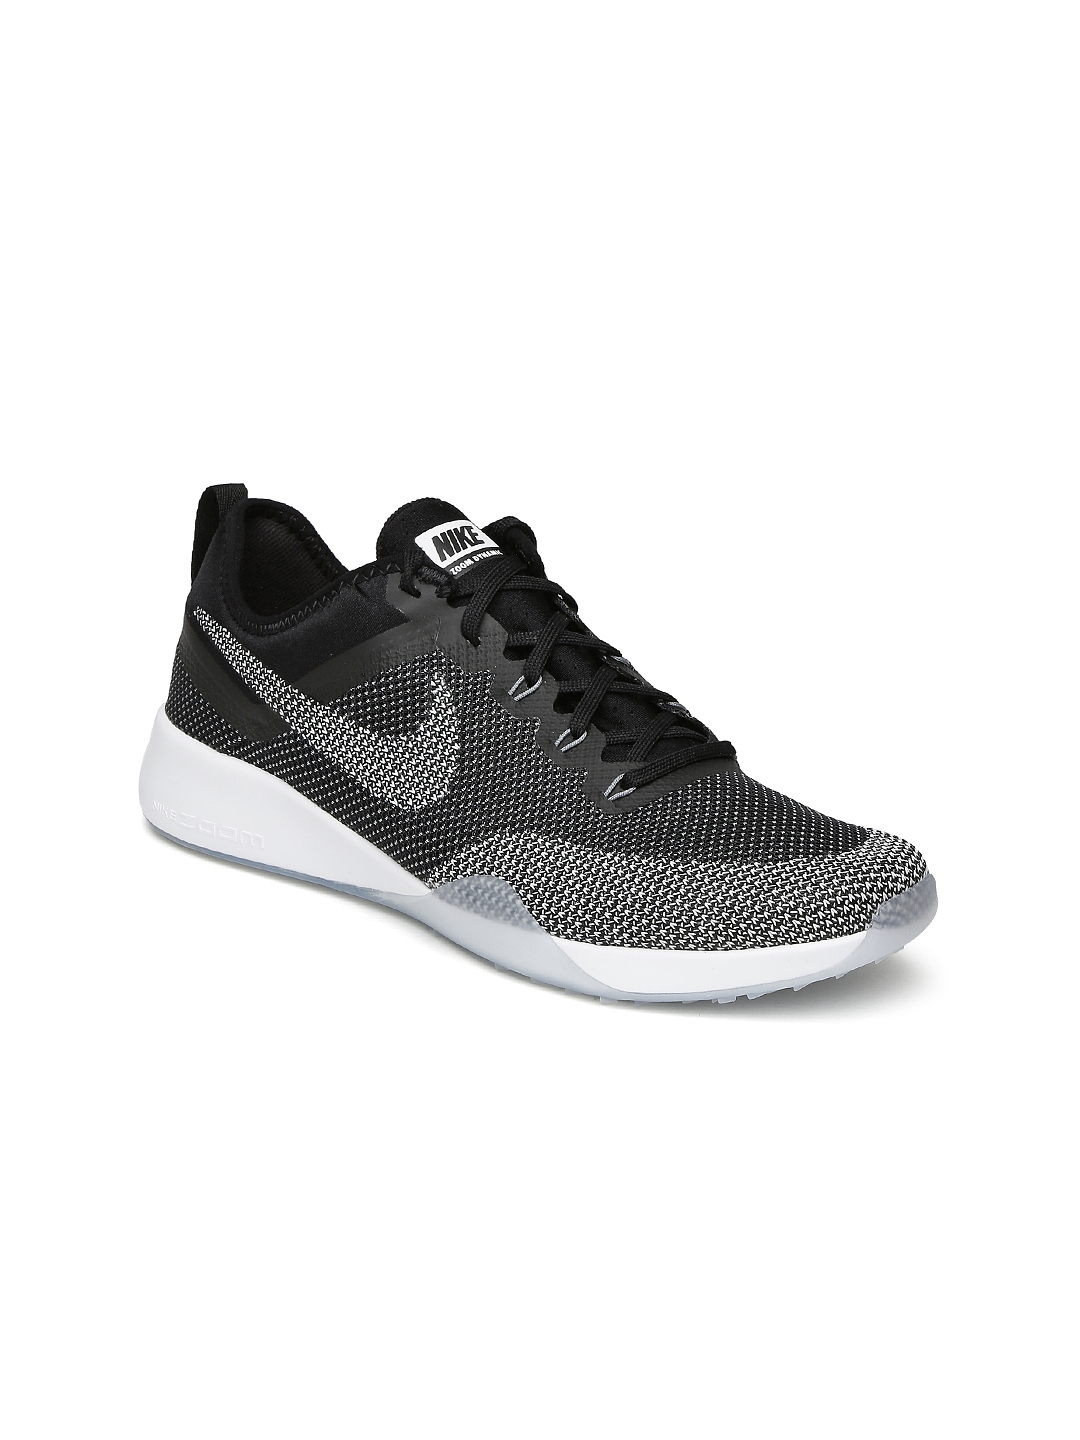 7e98e4f7e02 Buy Nike Women Black NIKE AIR ZOOM TR DYNAMIC Training Shoes ...